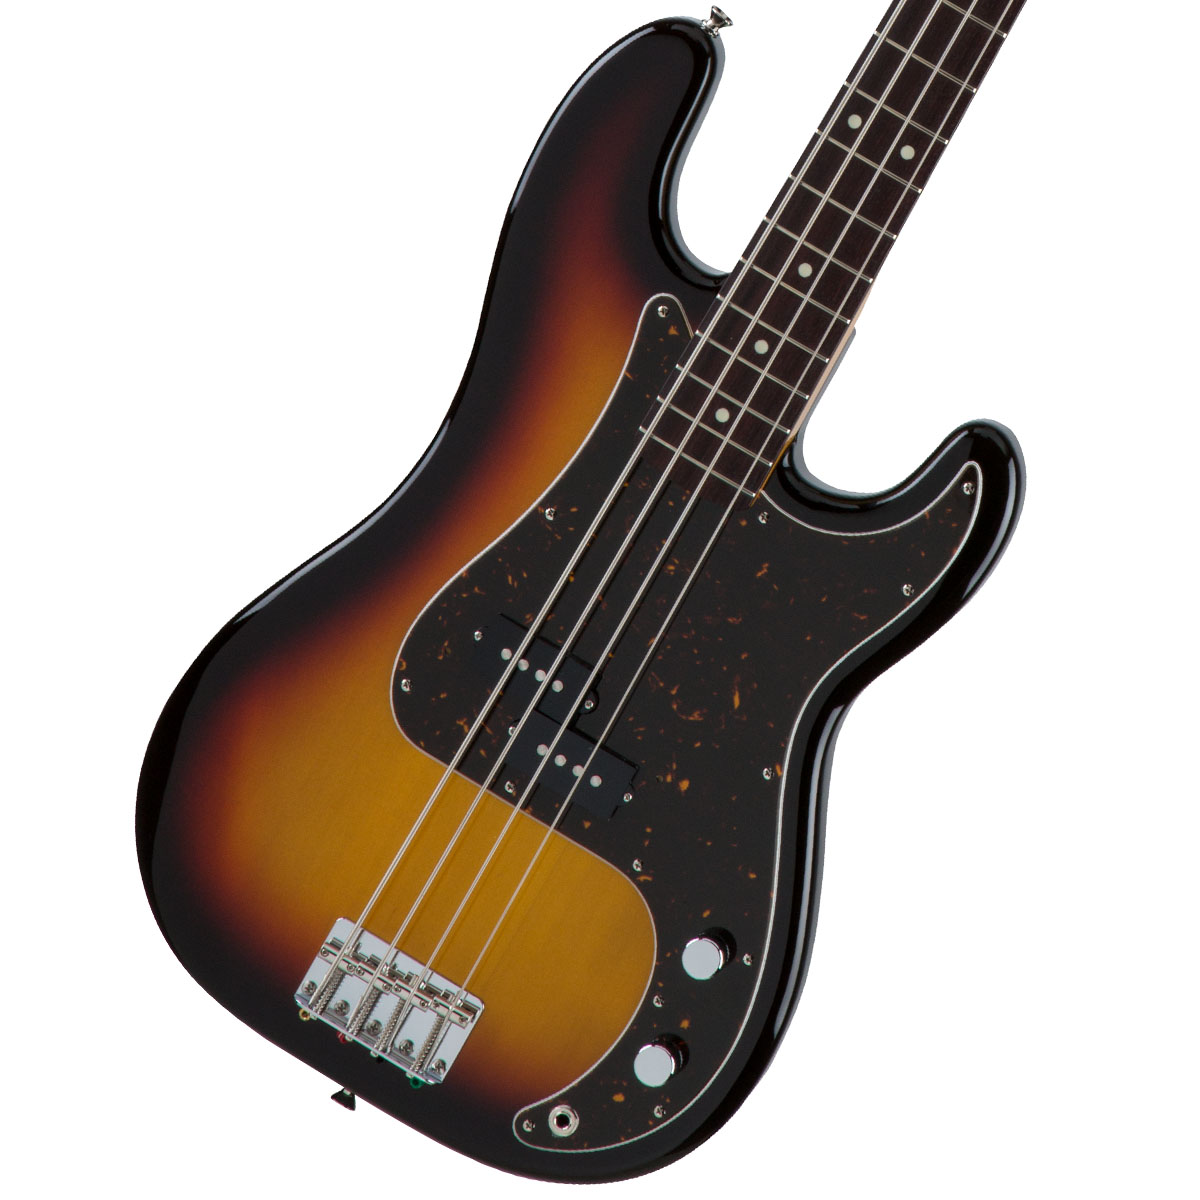 Fender / Made in Japan Traditional 60s Precision Bass Rosewood Fingerboard 3-Color Sunburst 【お取り寄せ商品】《FENDERケアキットプレゼント/+671038200》《ベース弦1setプレゼント!/+811131900》